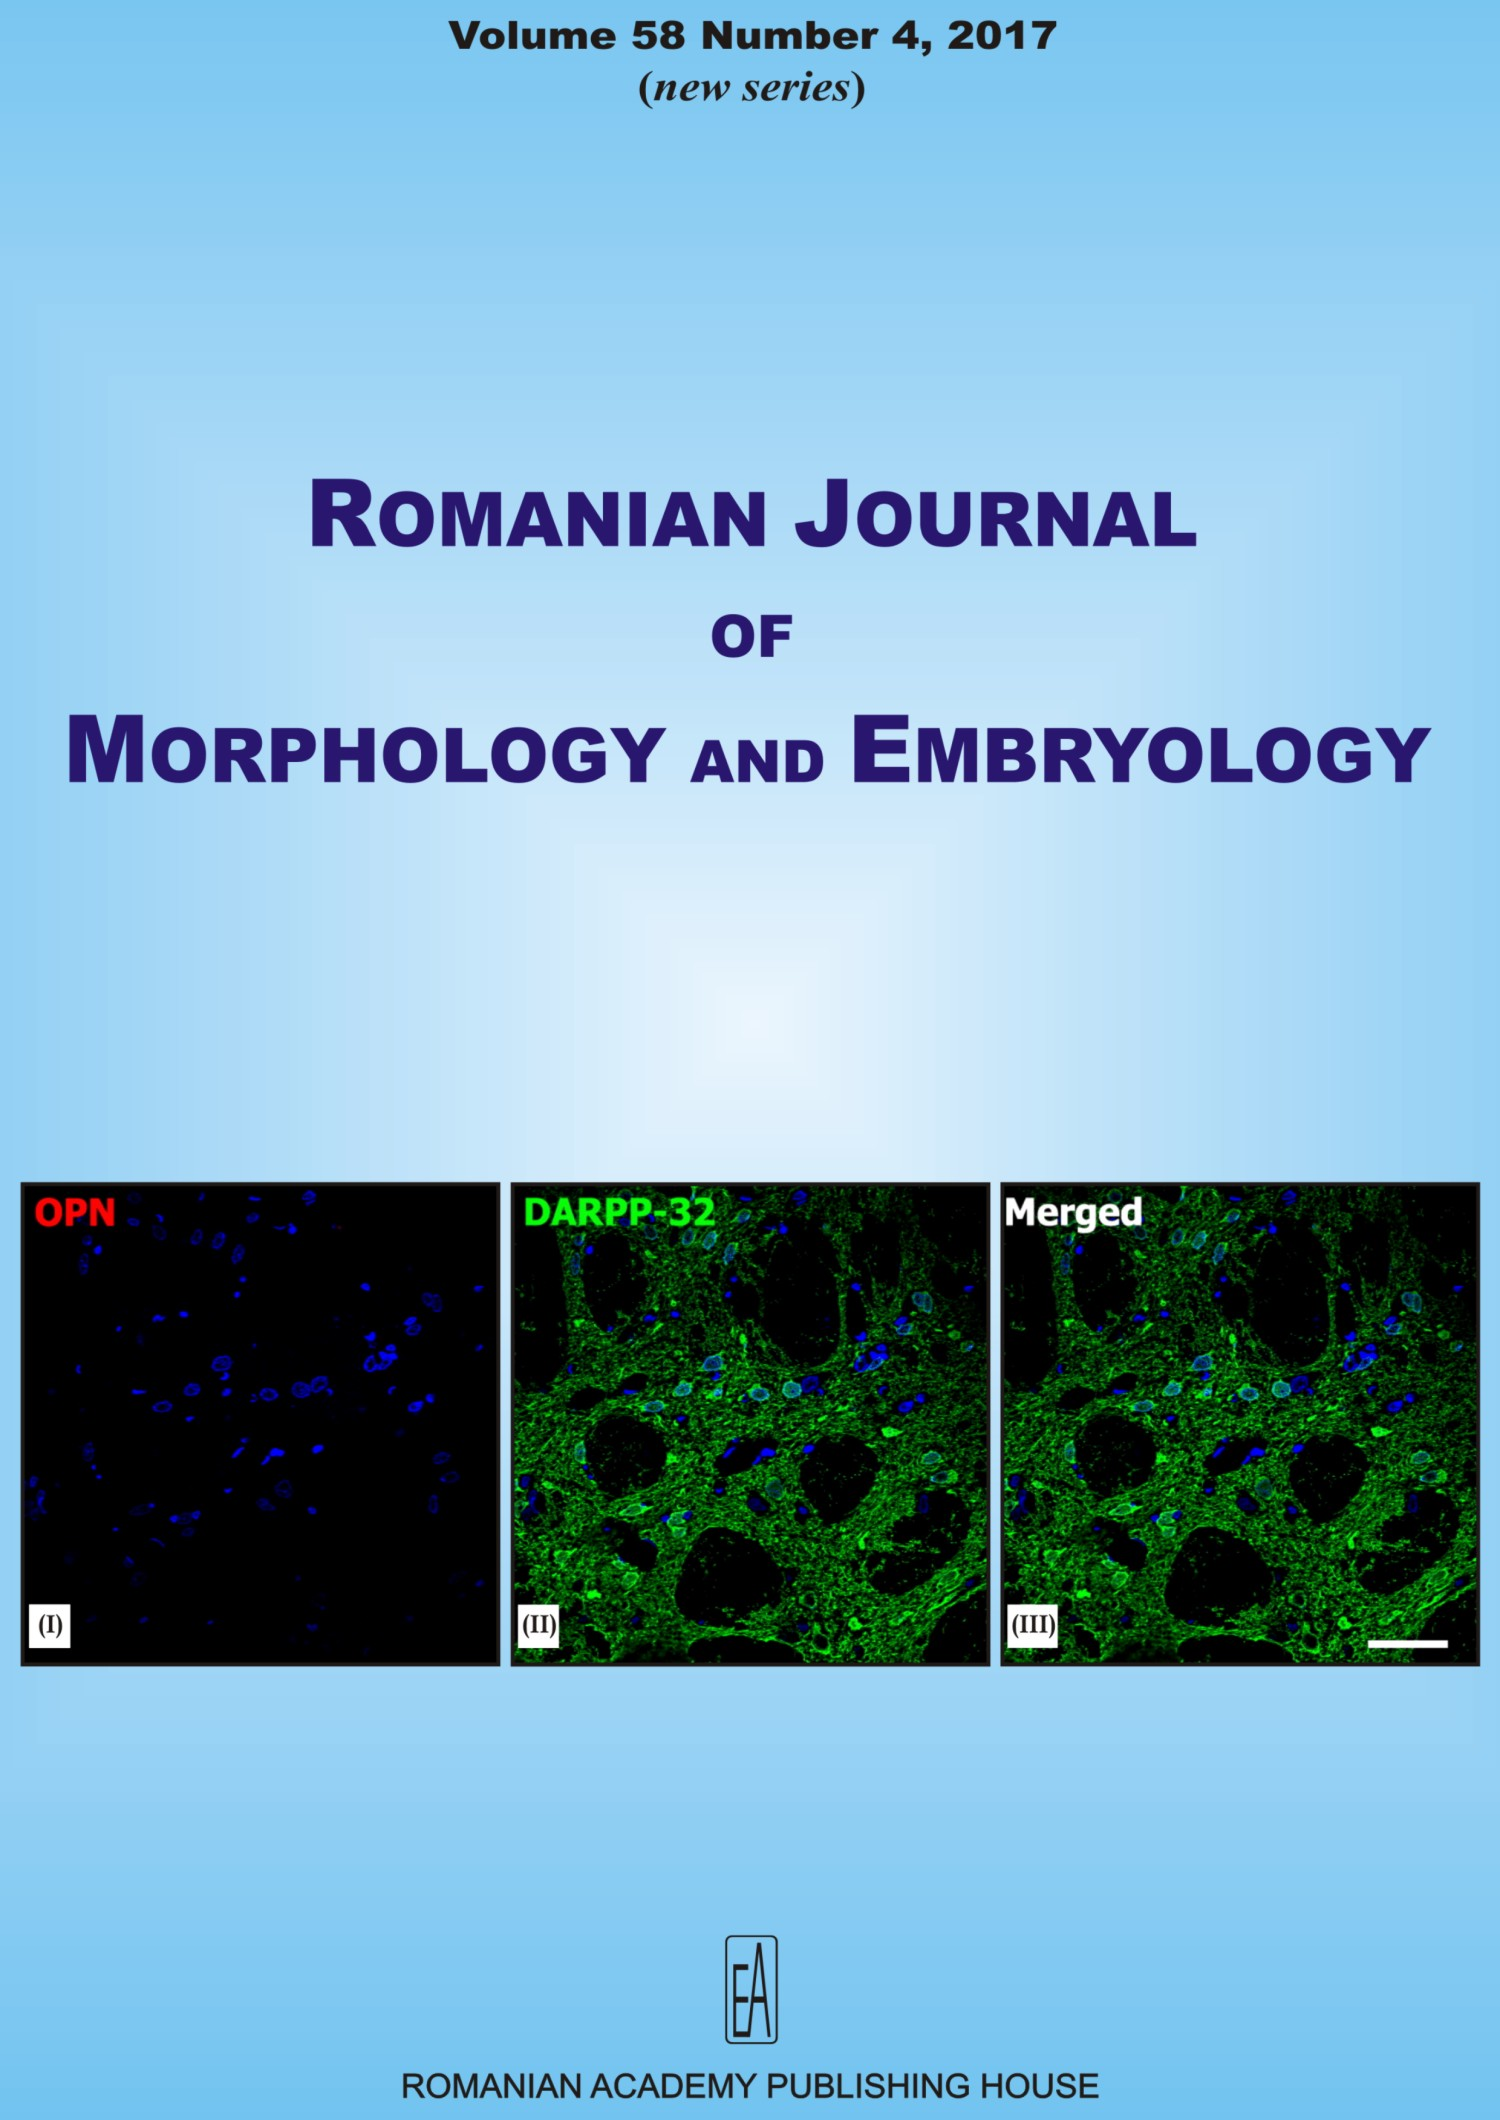 Romanian Journal of Morphology and Embryology, vol. 58 no. 4, 2017